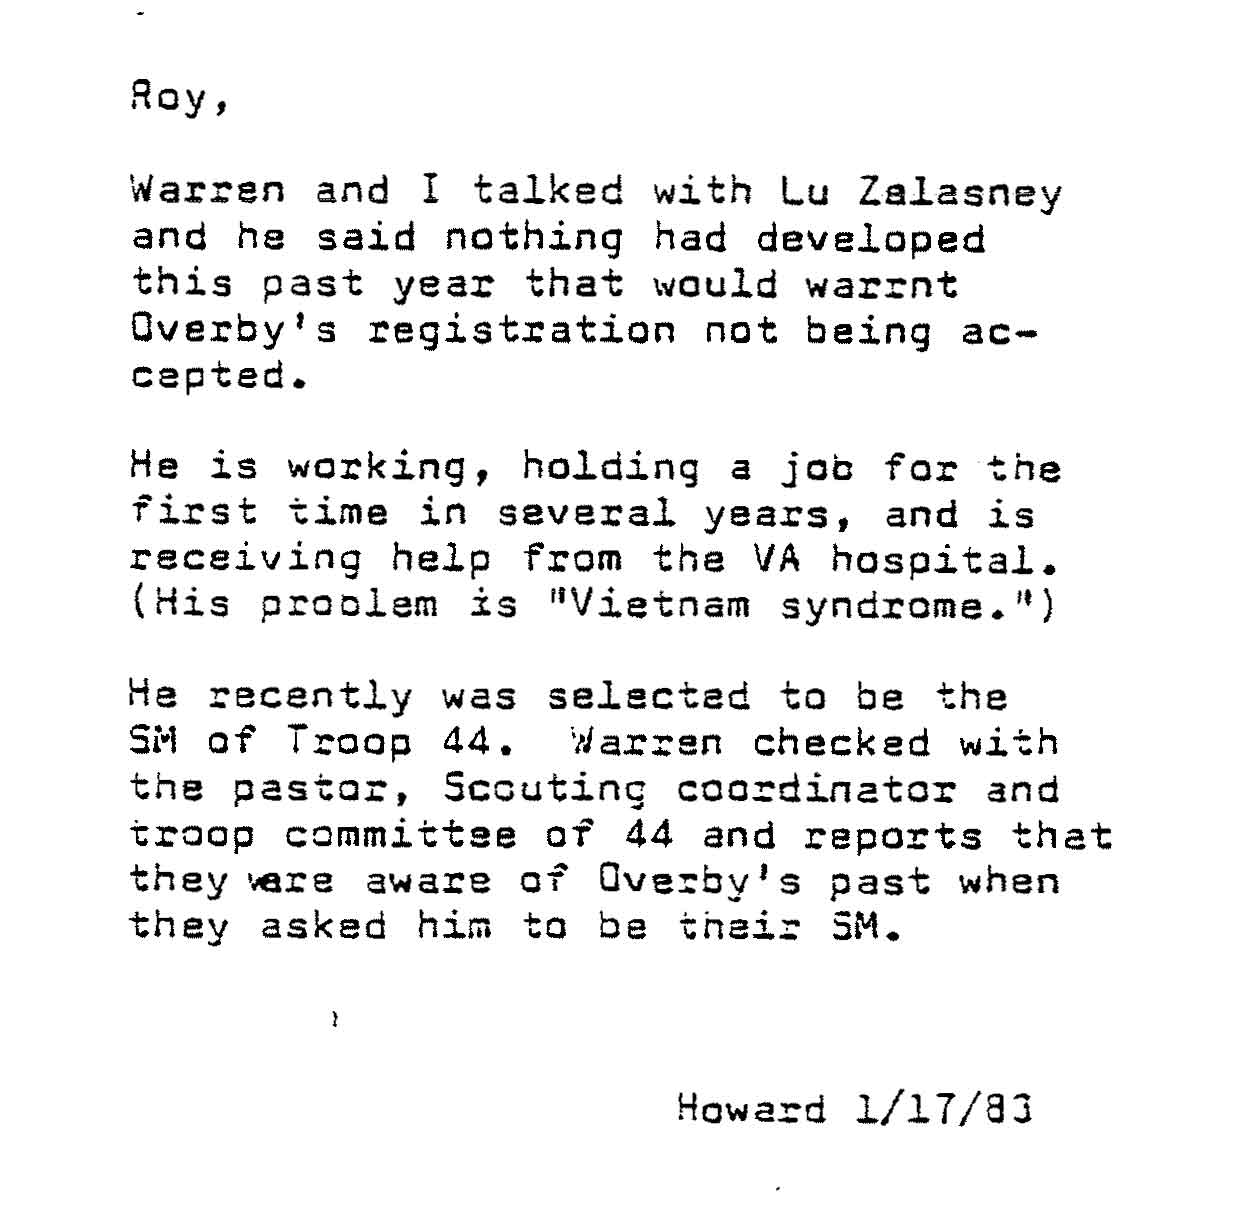 1984-12-28-letter-from-bsa-to-local-council-regarding-overby